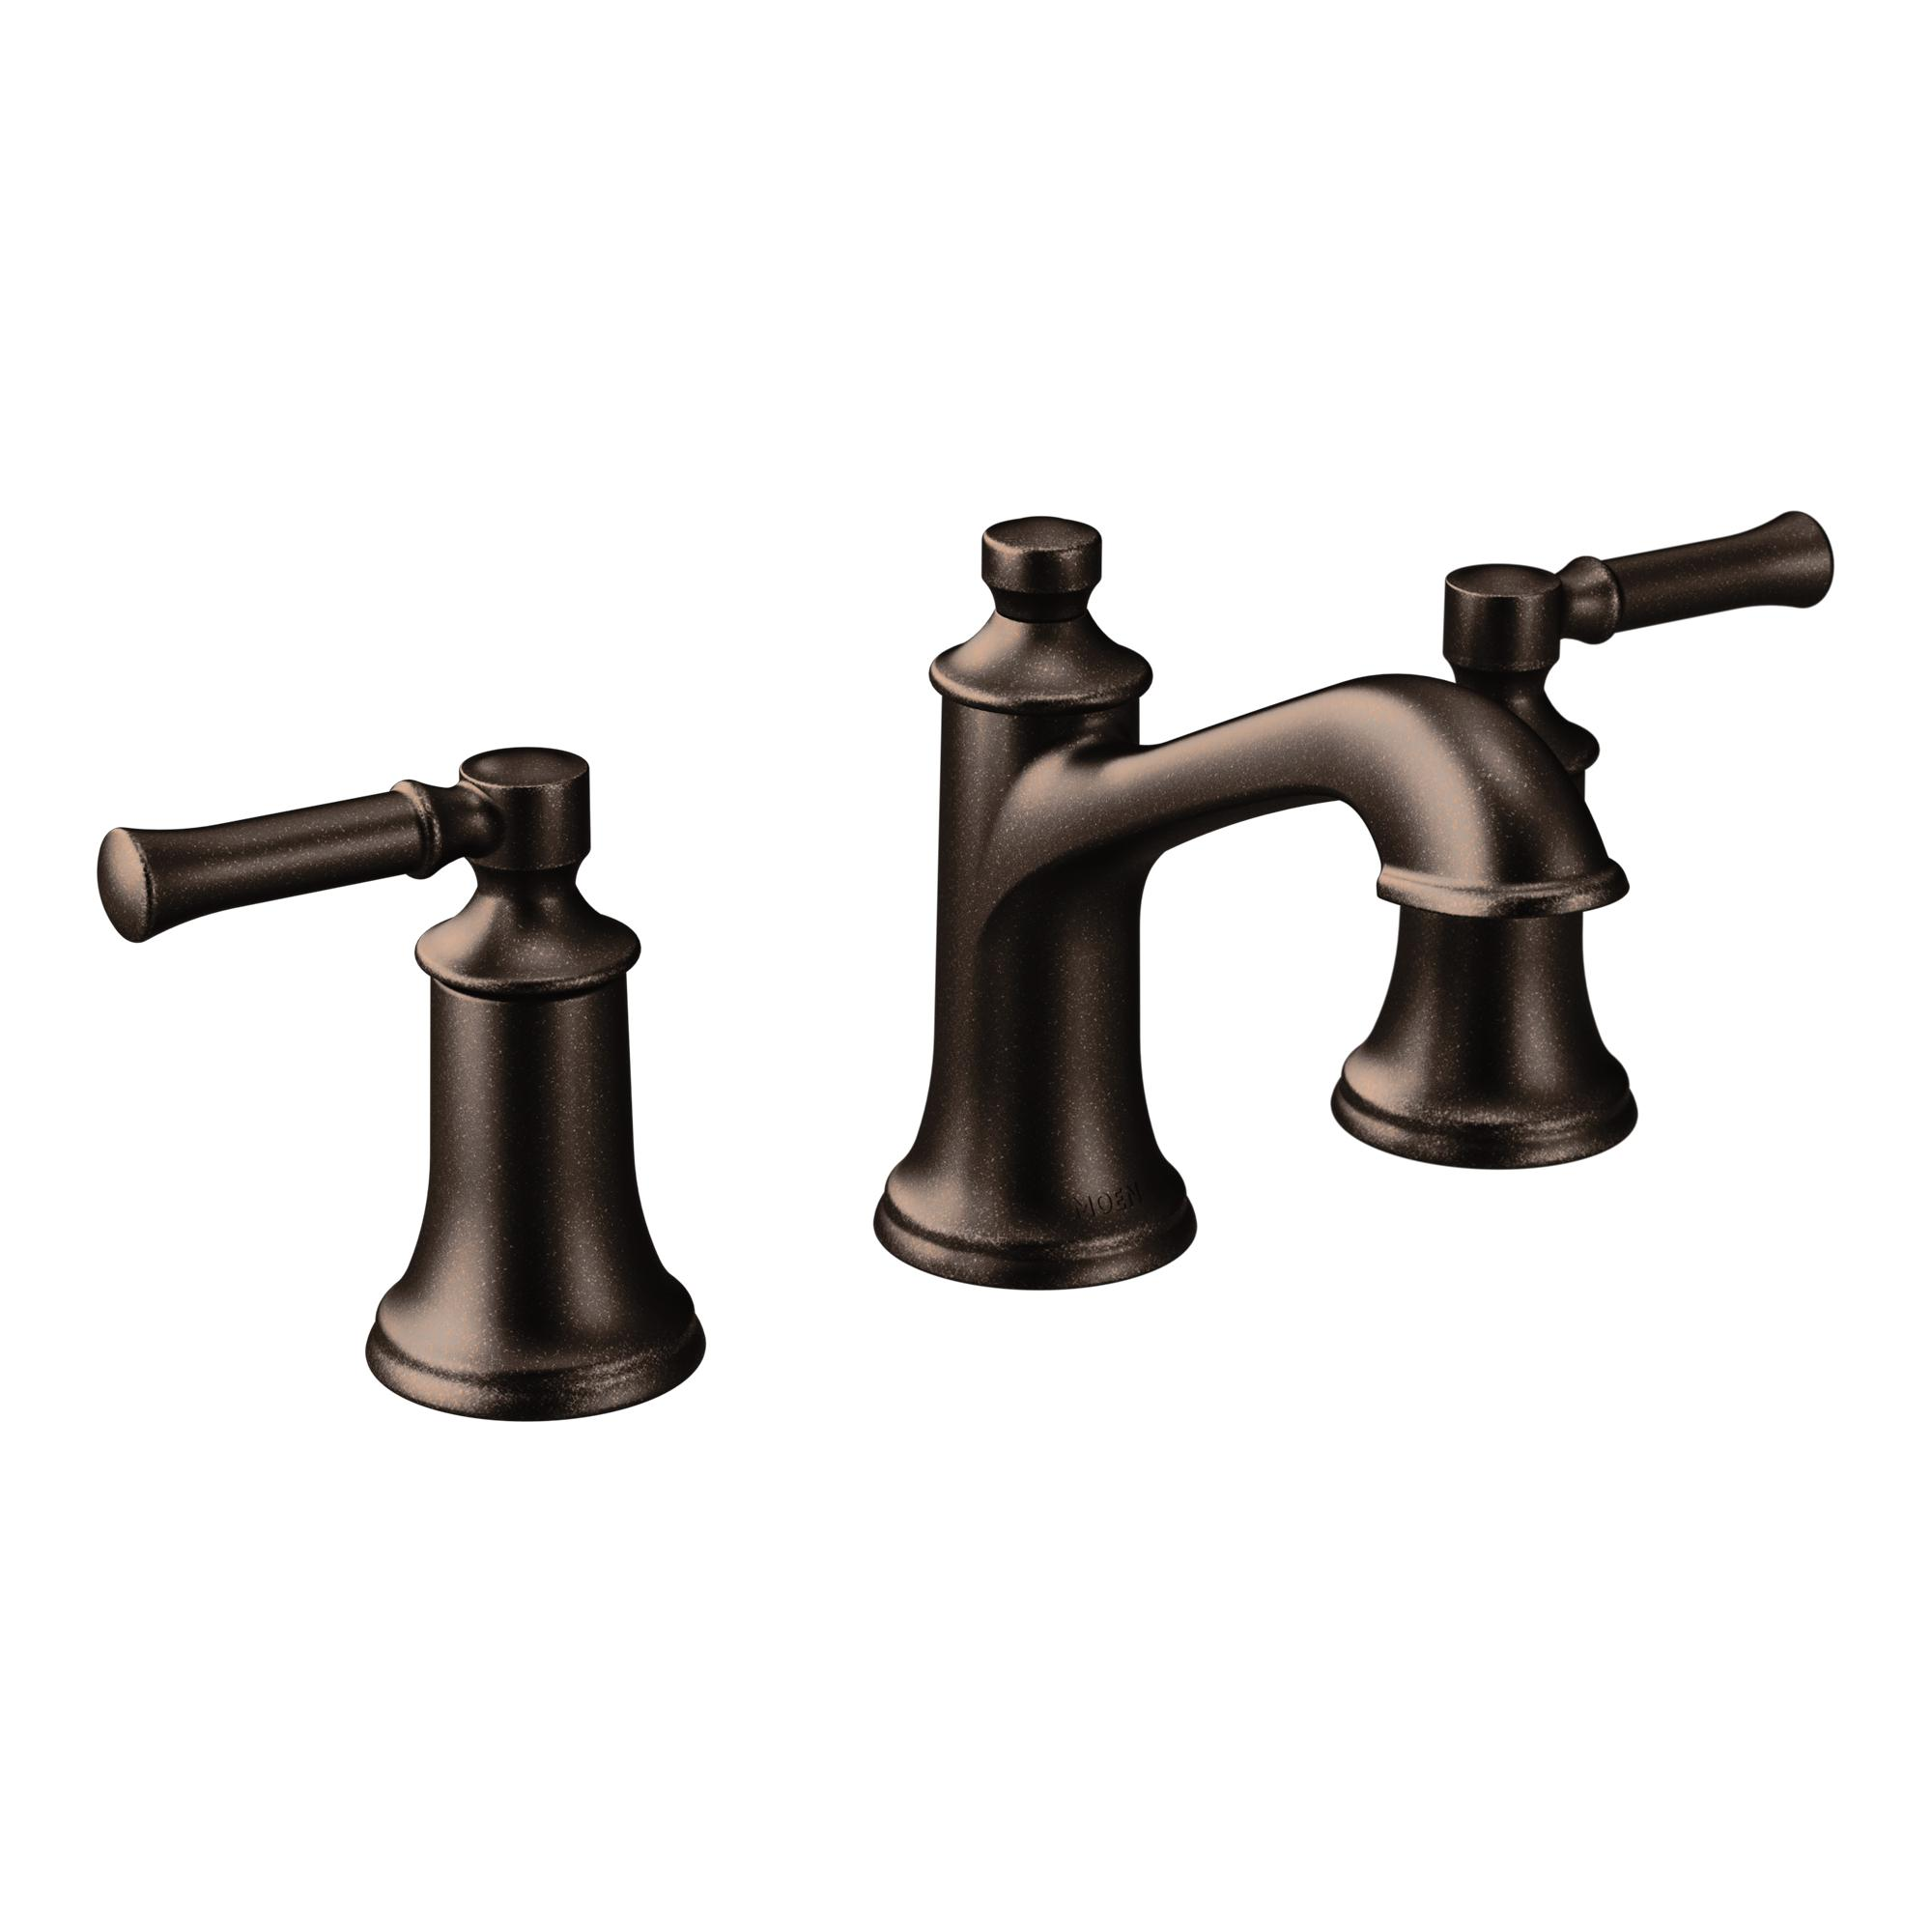 soon brushed bronze copy bathroom faucet a lightbox product coming tulip allora series usa faucets bn